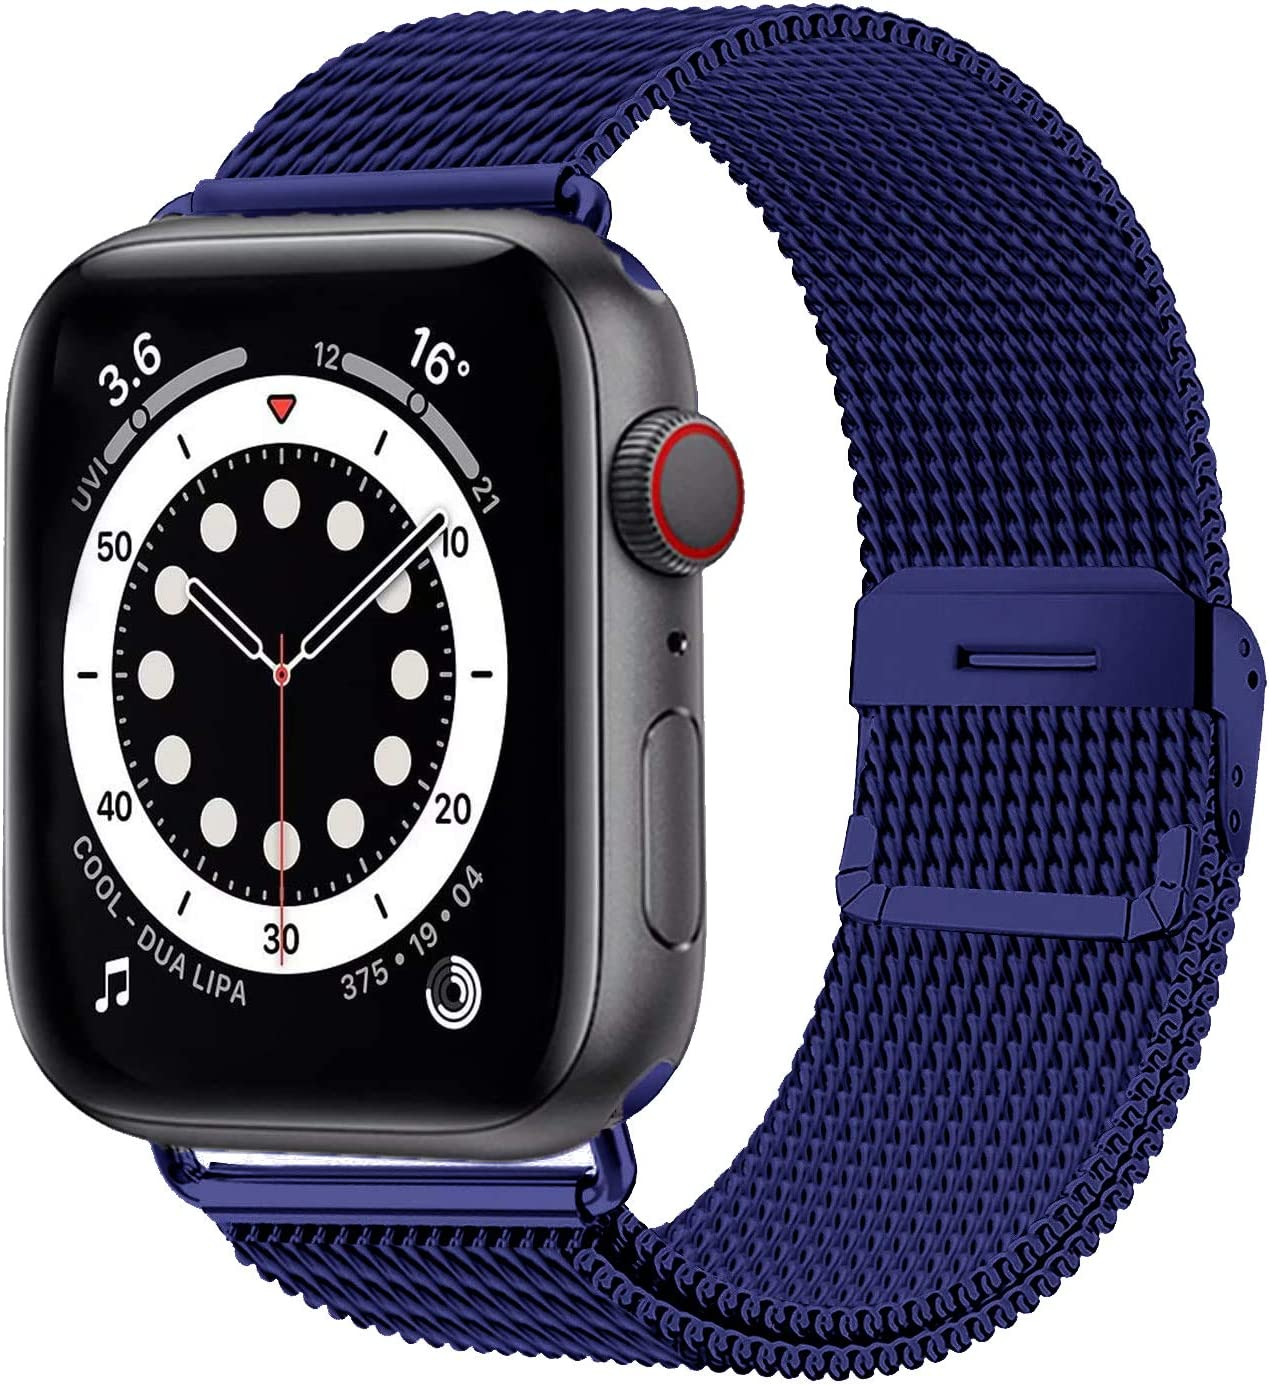 Esroyita Metal Band Compatible with Apple Watch 38mm 40mm,Sport Wristband Loop Stainless Steel Mesh Band with Strong Magnetic Closure Strap for iWatch Series 6/5/4/3/2/1,SE